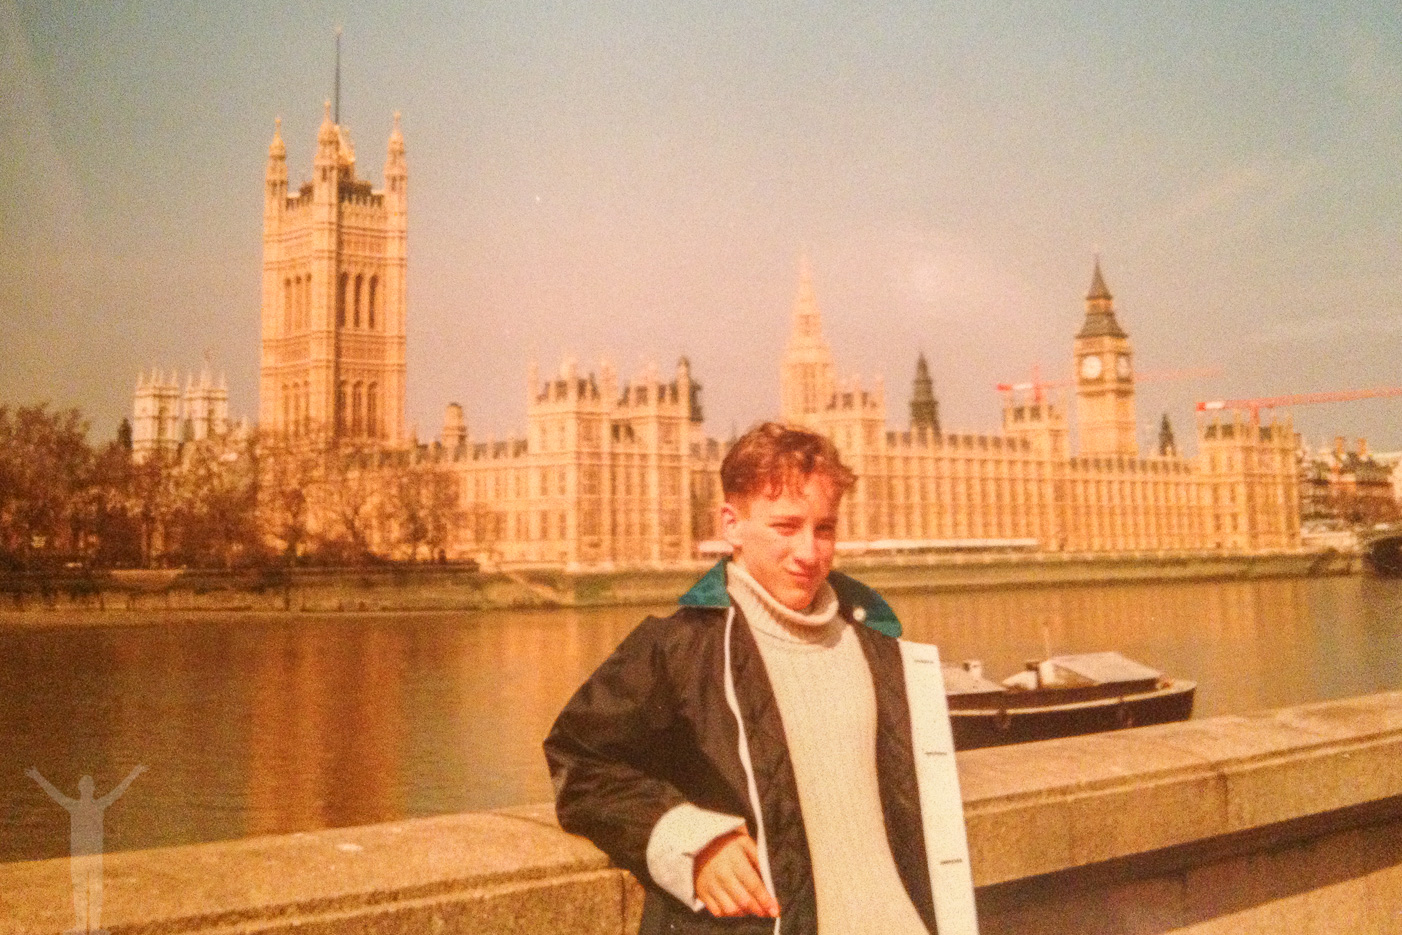 Dryden i London 1996